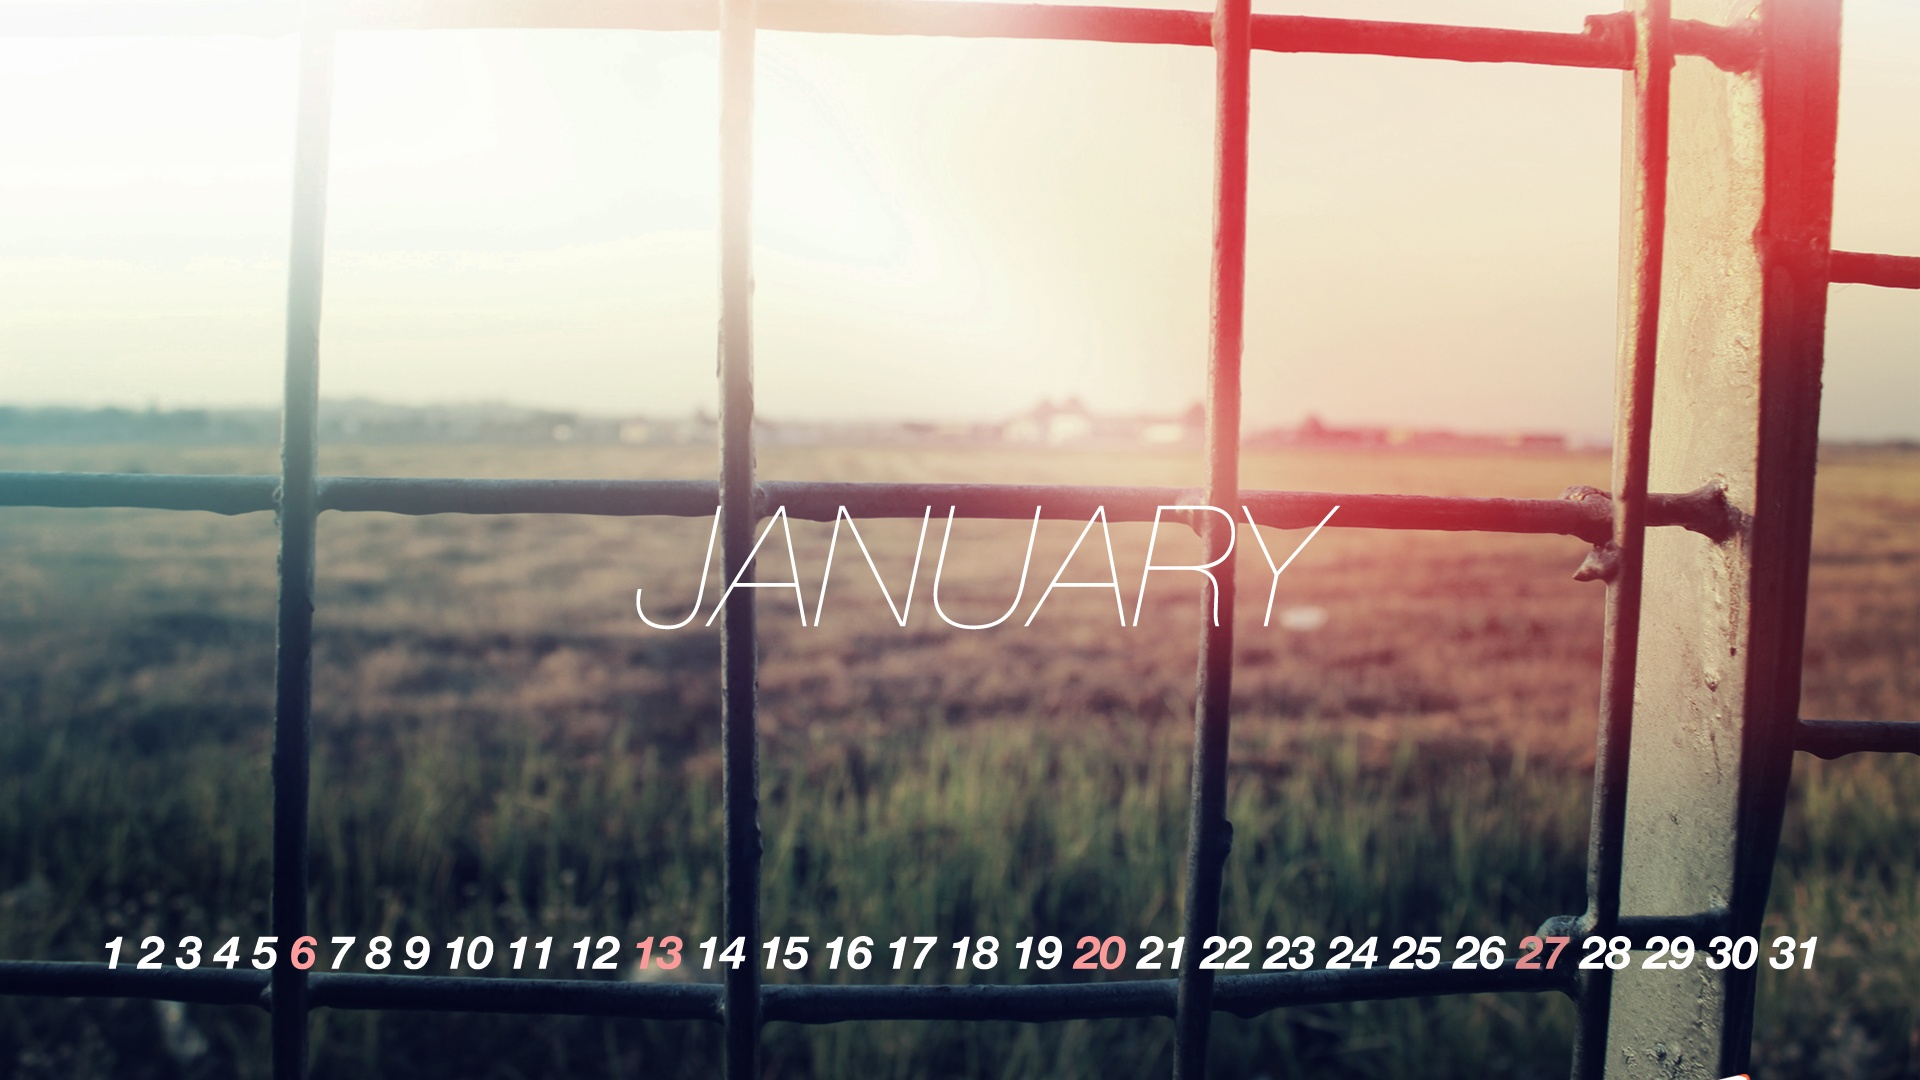 1920x1080 Welcome To January